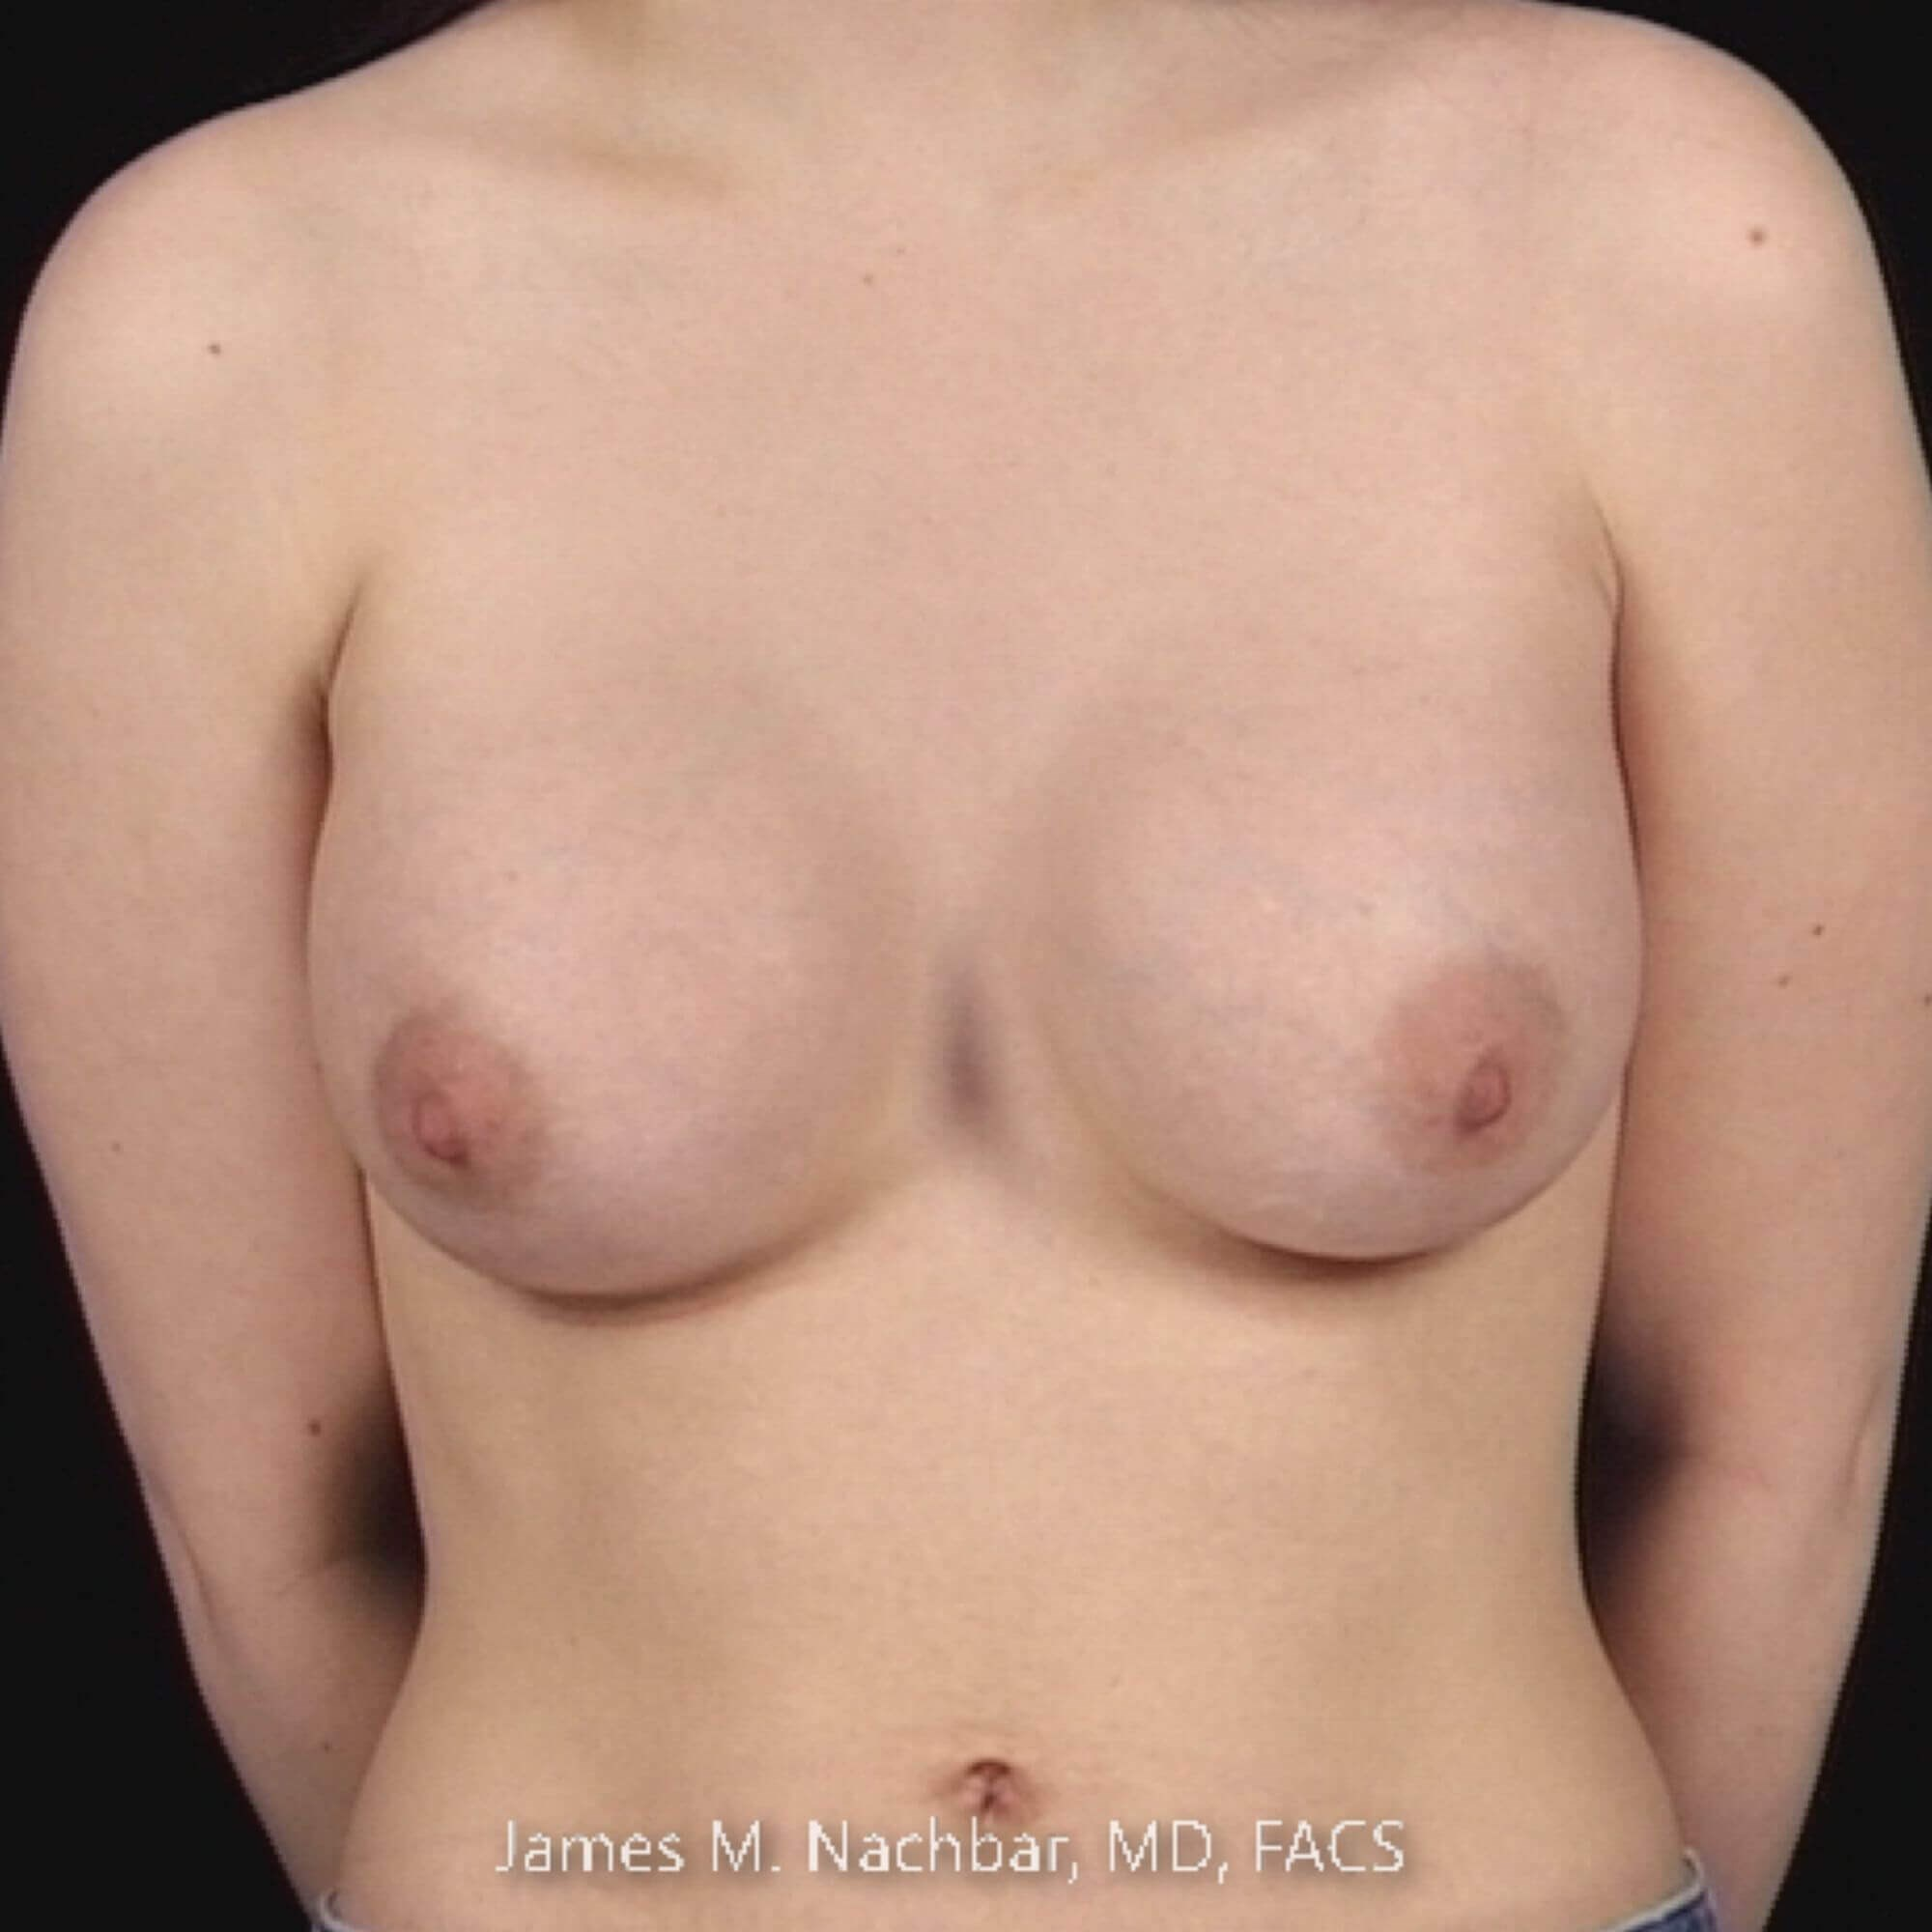 Front View Augmentation 2 Months After